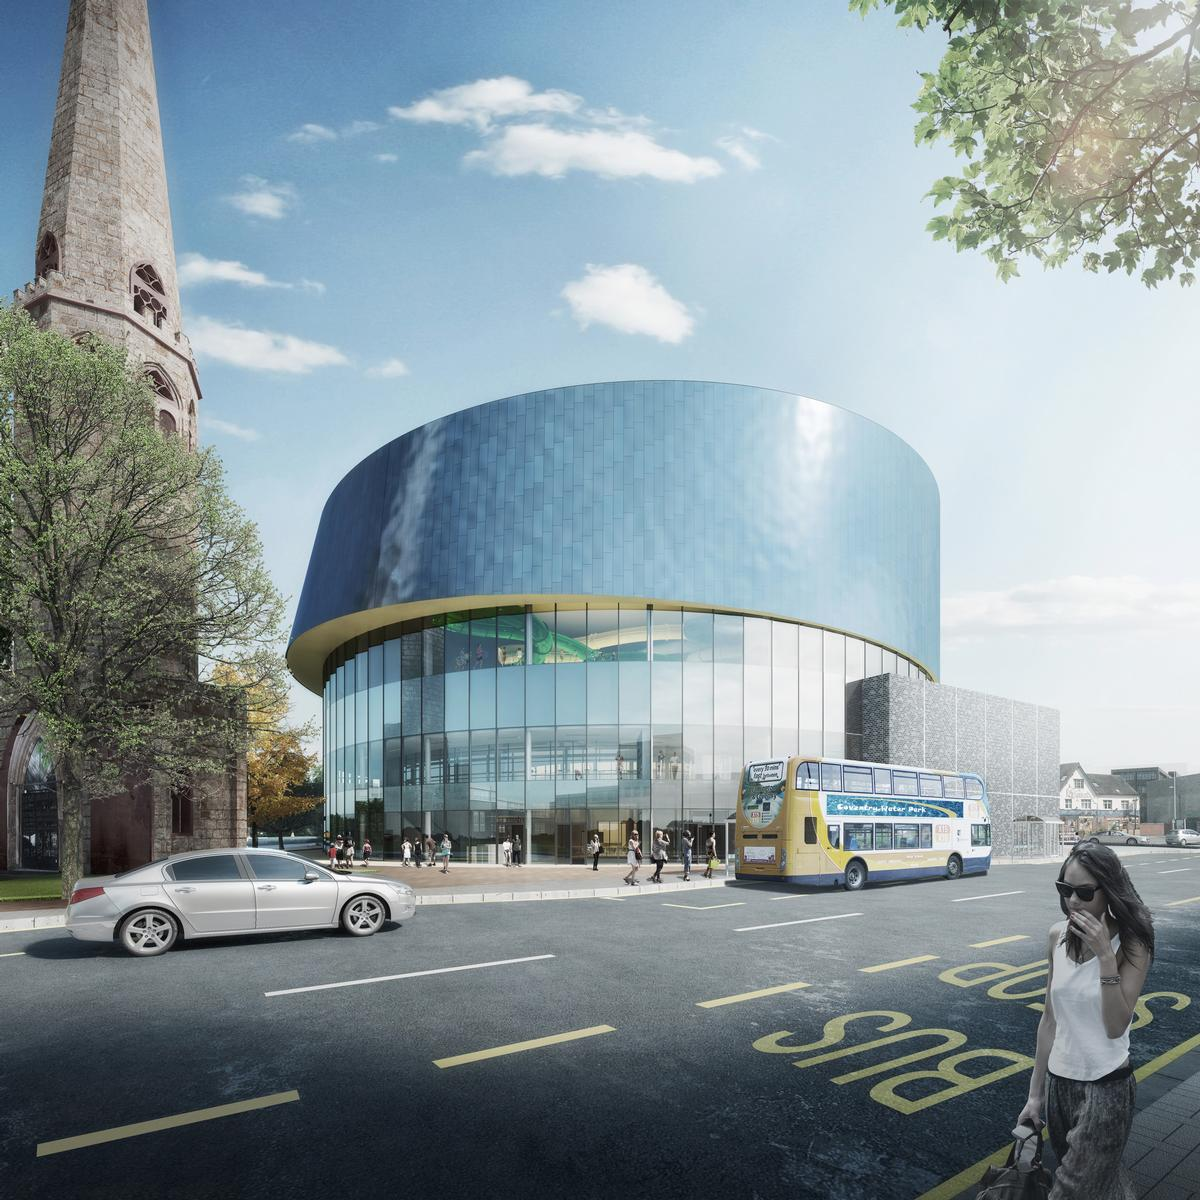 Studio partner Michael Hall said the central location and striking design have been chosen to persuade more local people to use the facilities and improve their health and wellbeing / FaulknerBrowns